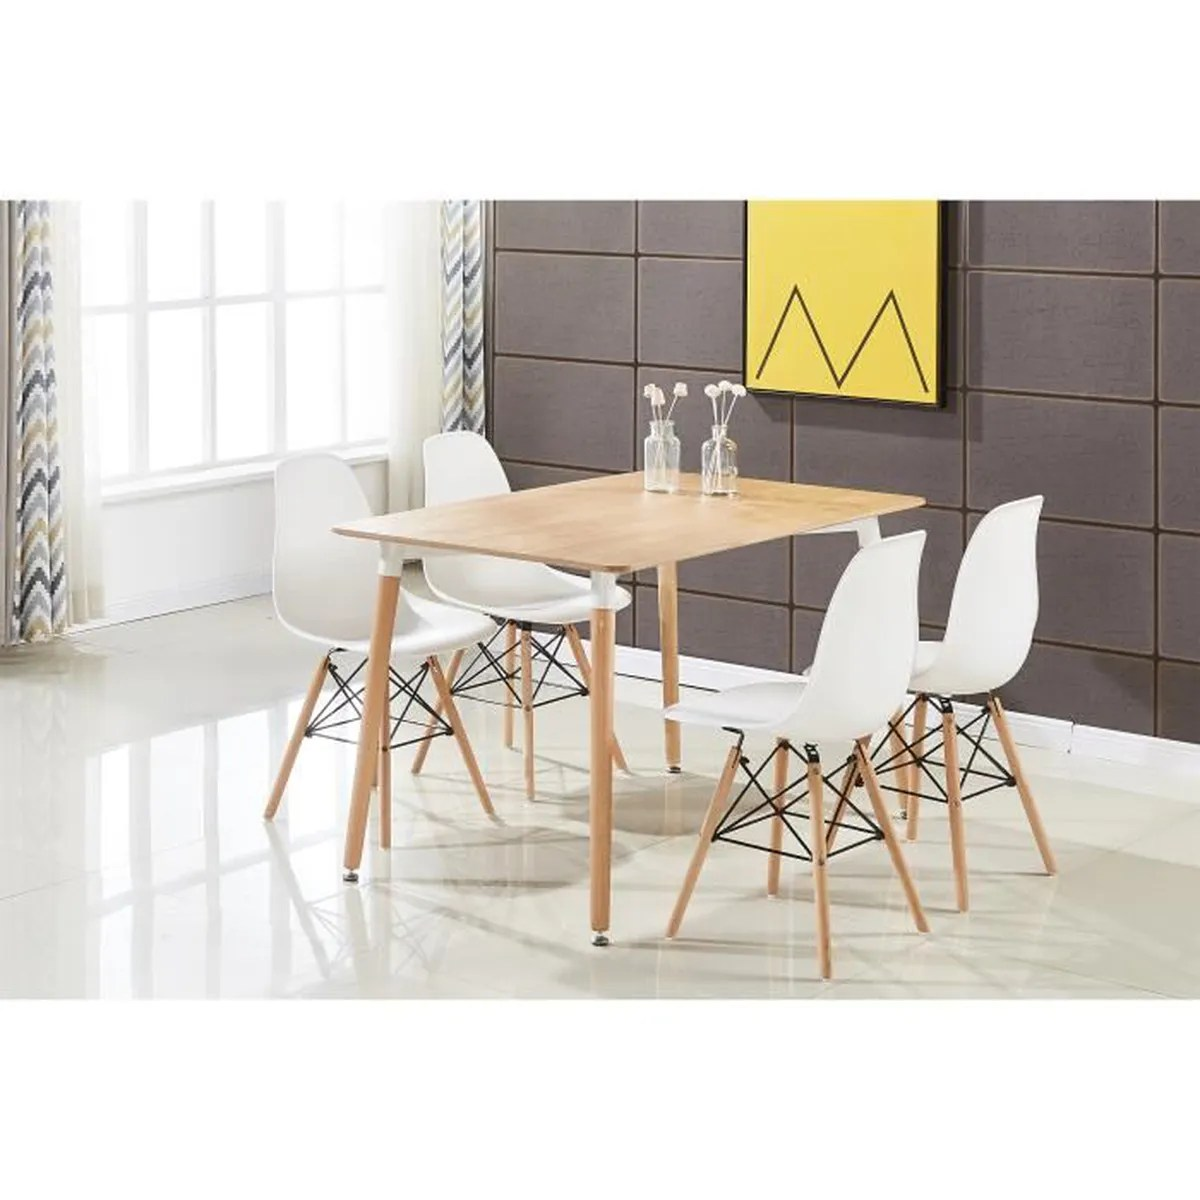 Chaises Blanches Modernes Chaises Blanches Design Salle Manger Bookmarkplus Info